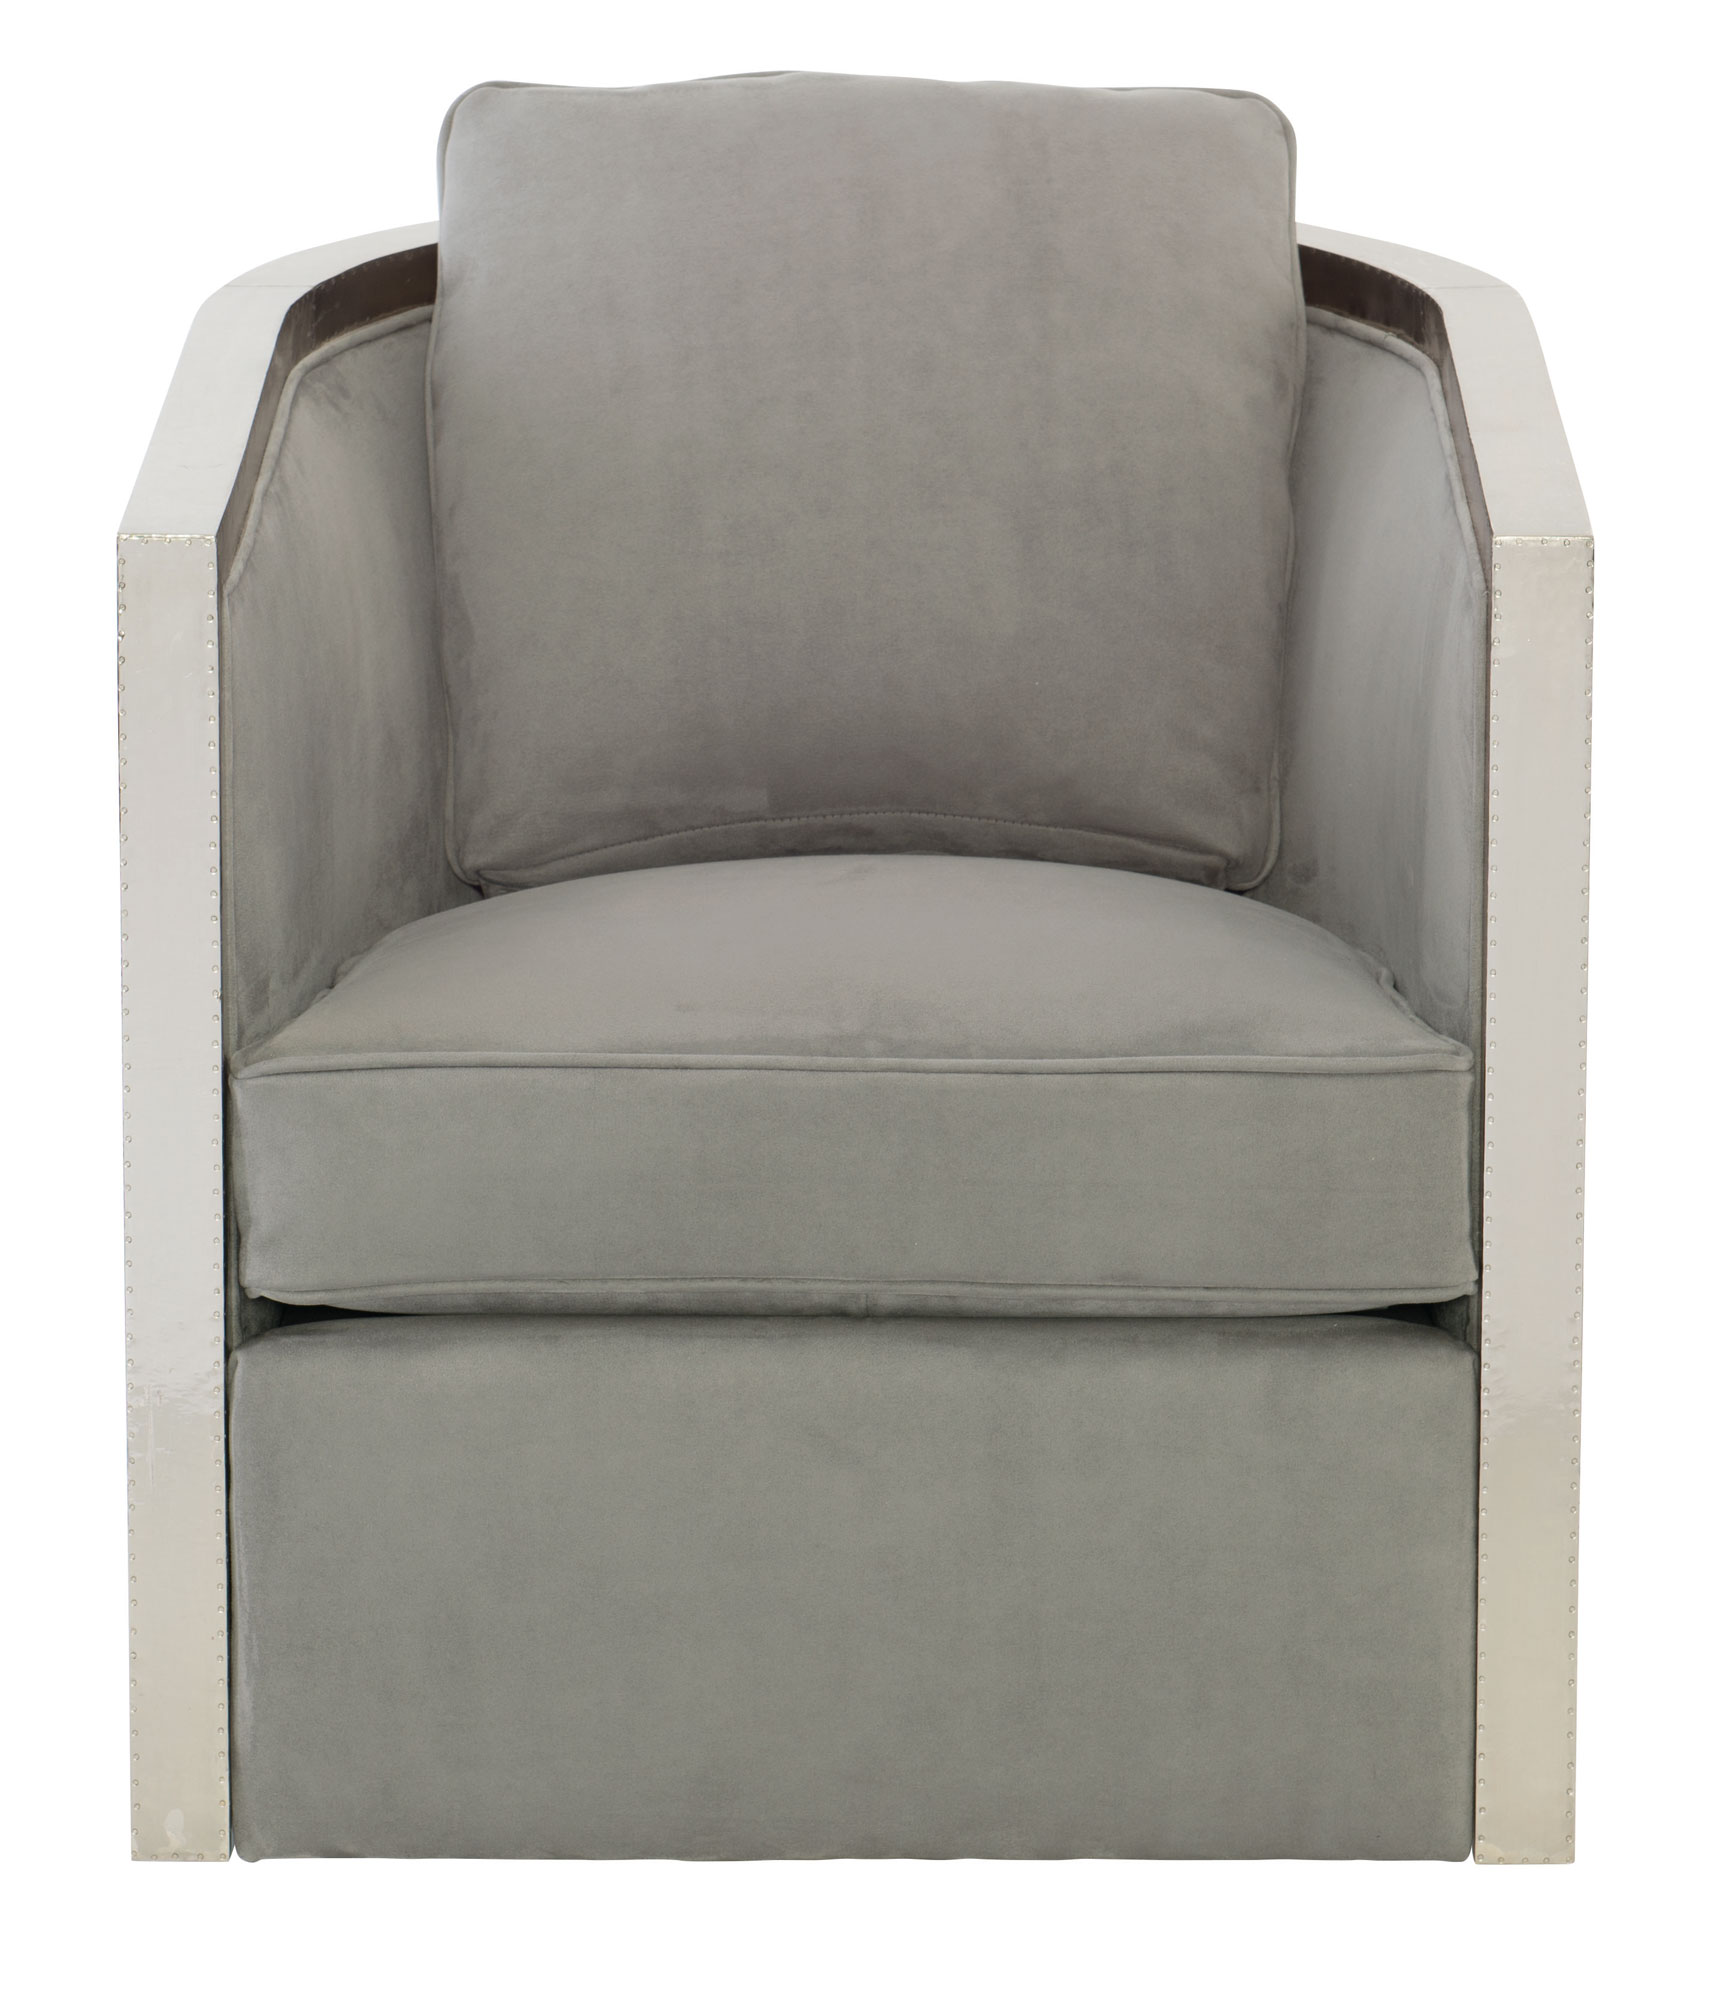 down sofas canada leather sofa with chaise longue swivel chair | bernhardt